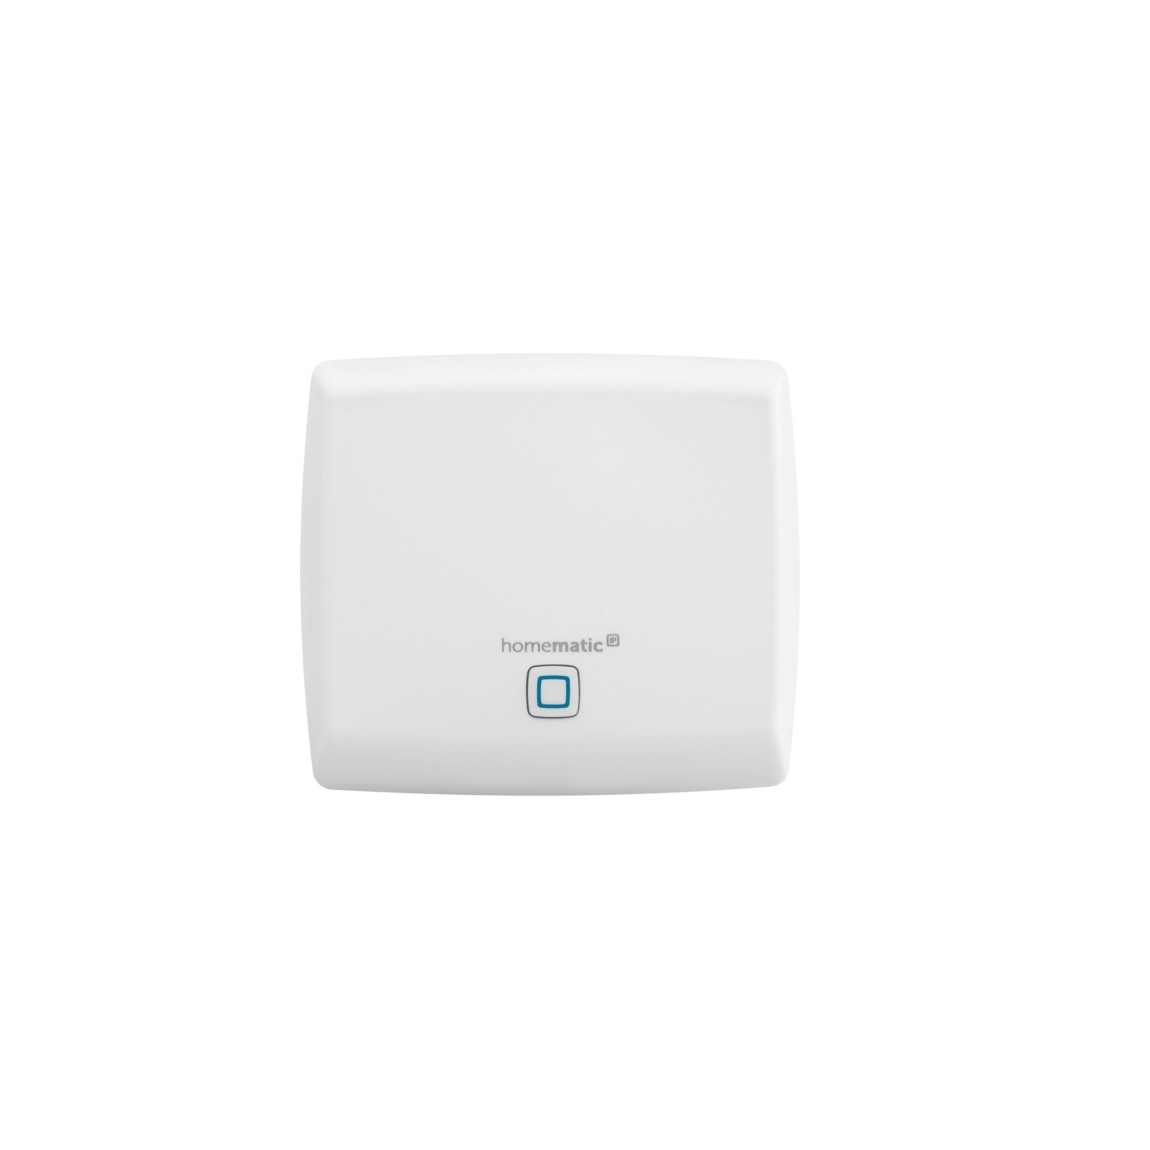 HomeMatic IP Access Point - Weiß